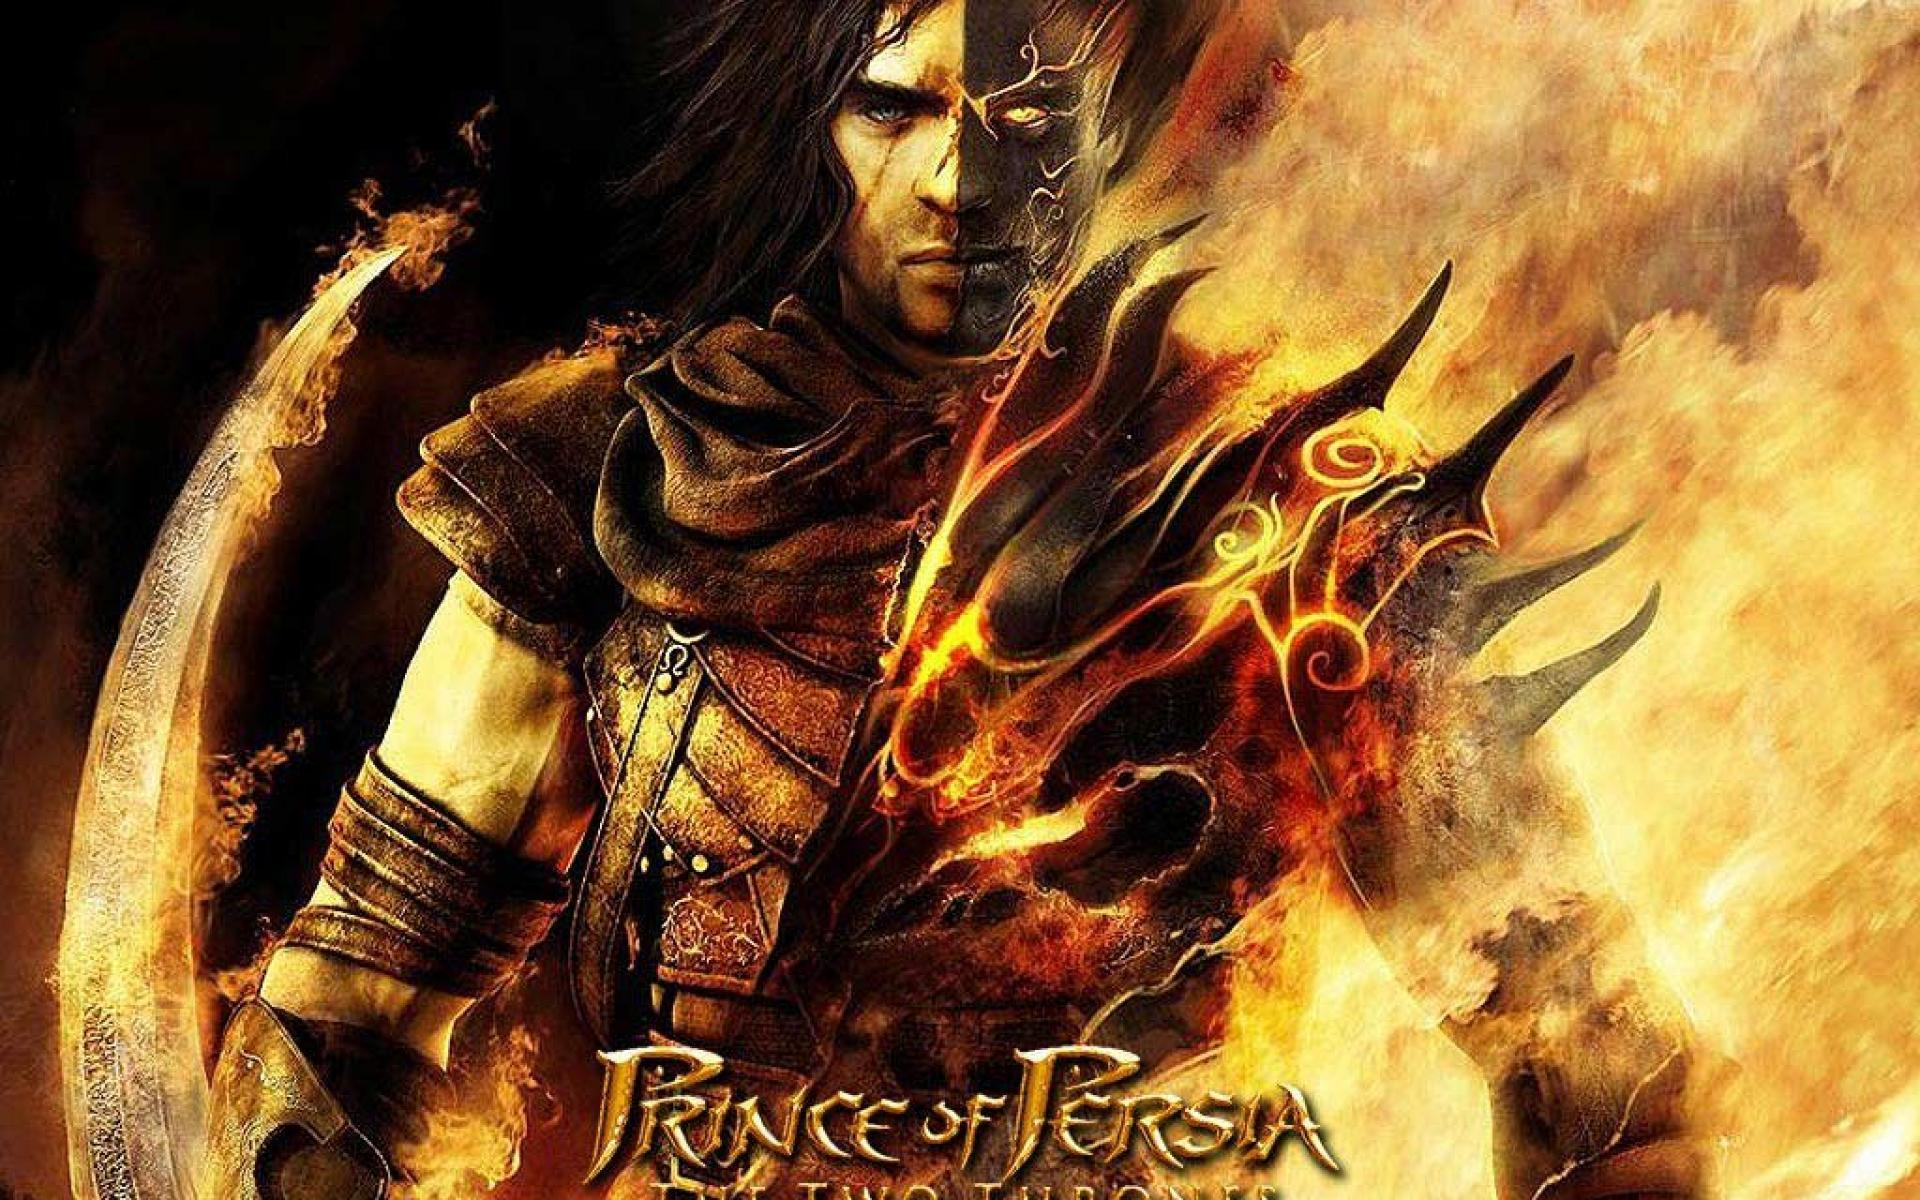 Prince Of Persia The Sands Of Time Wallpapers Wallpaper Cave